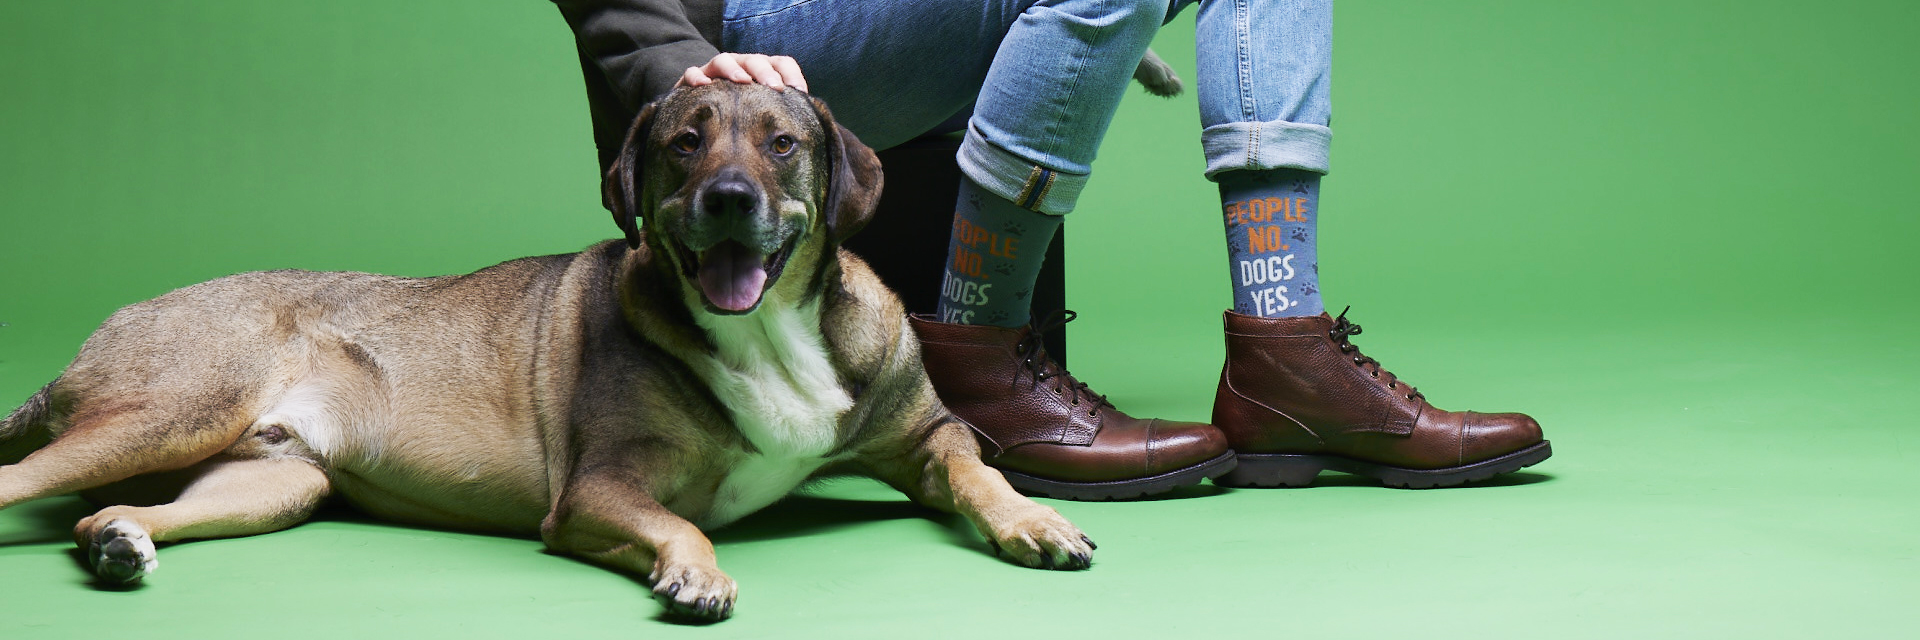 people no, dogs yes, mens socks with giant dog